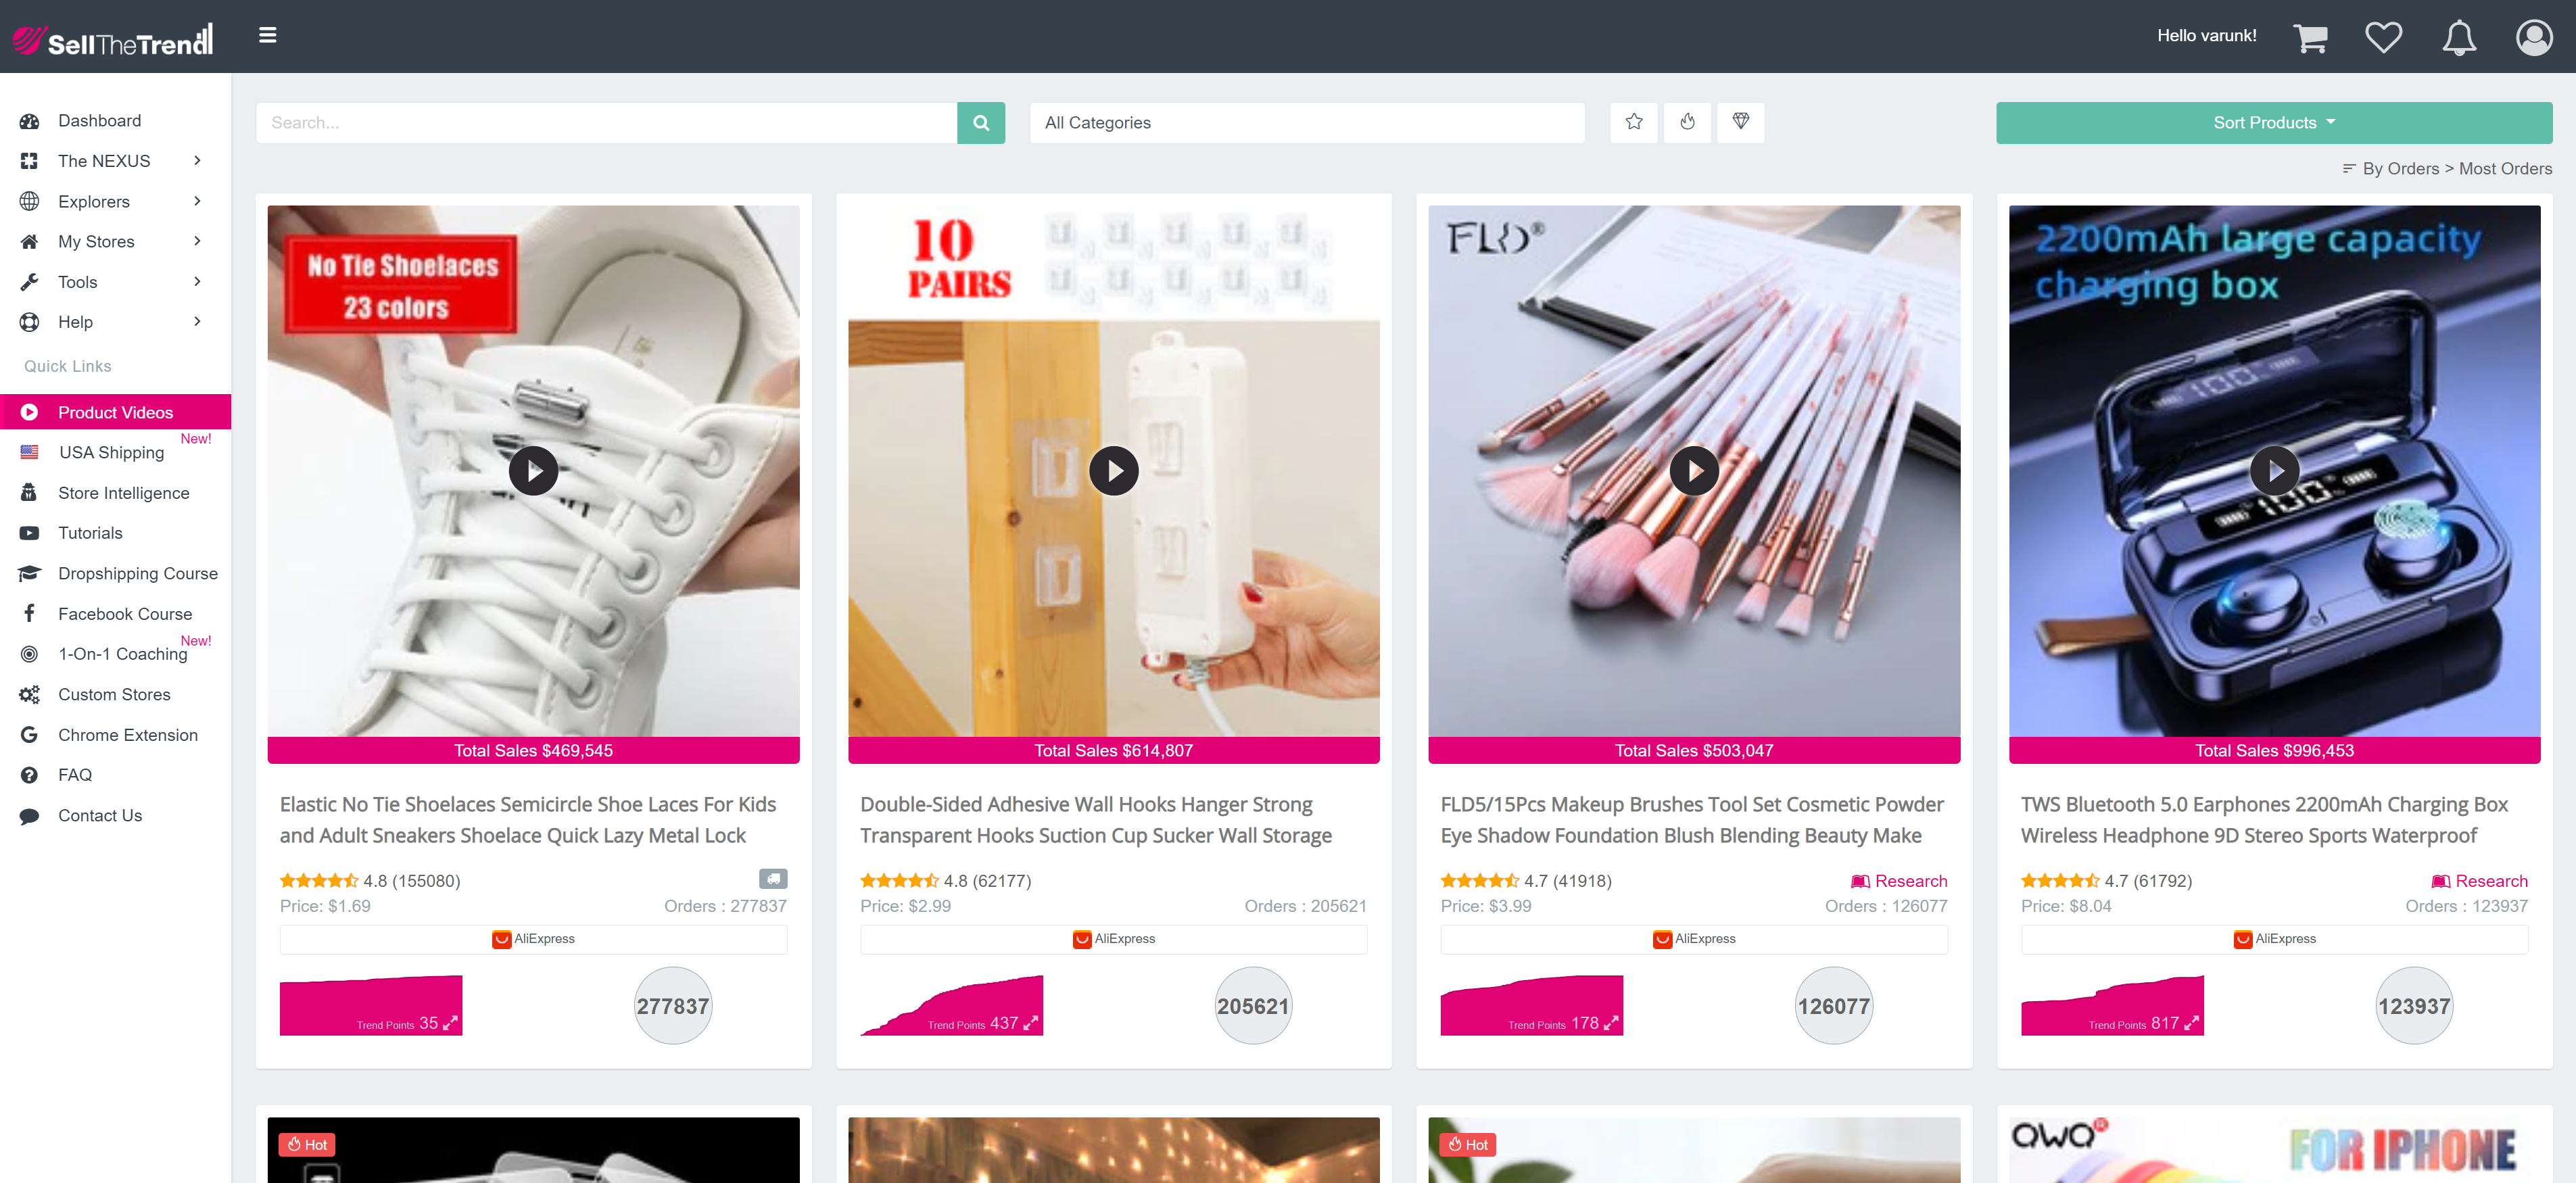 SellTheTrend - Product Videos Filter